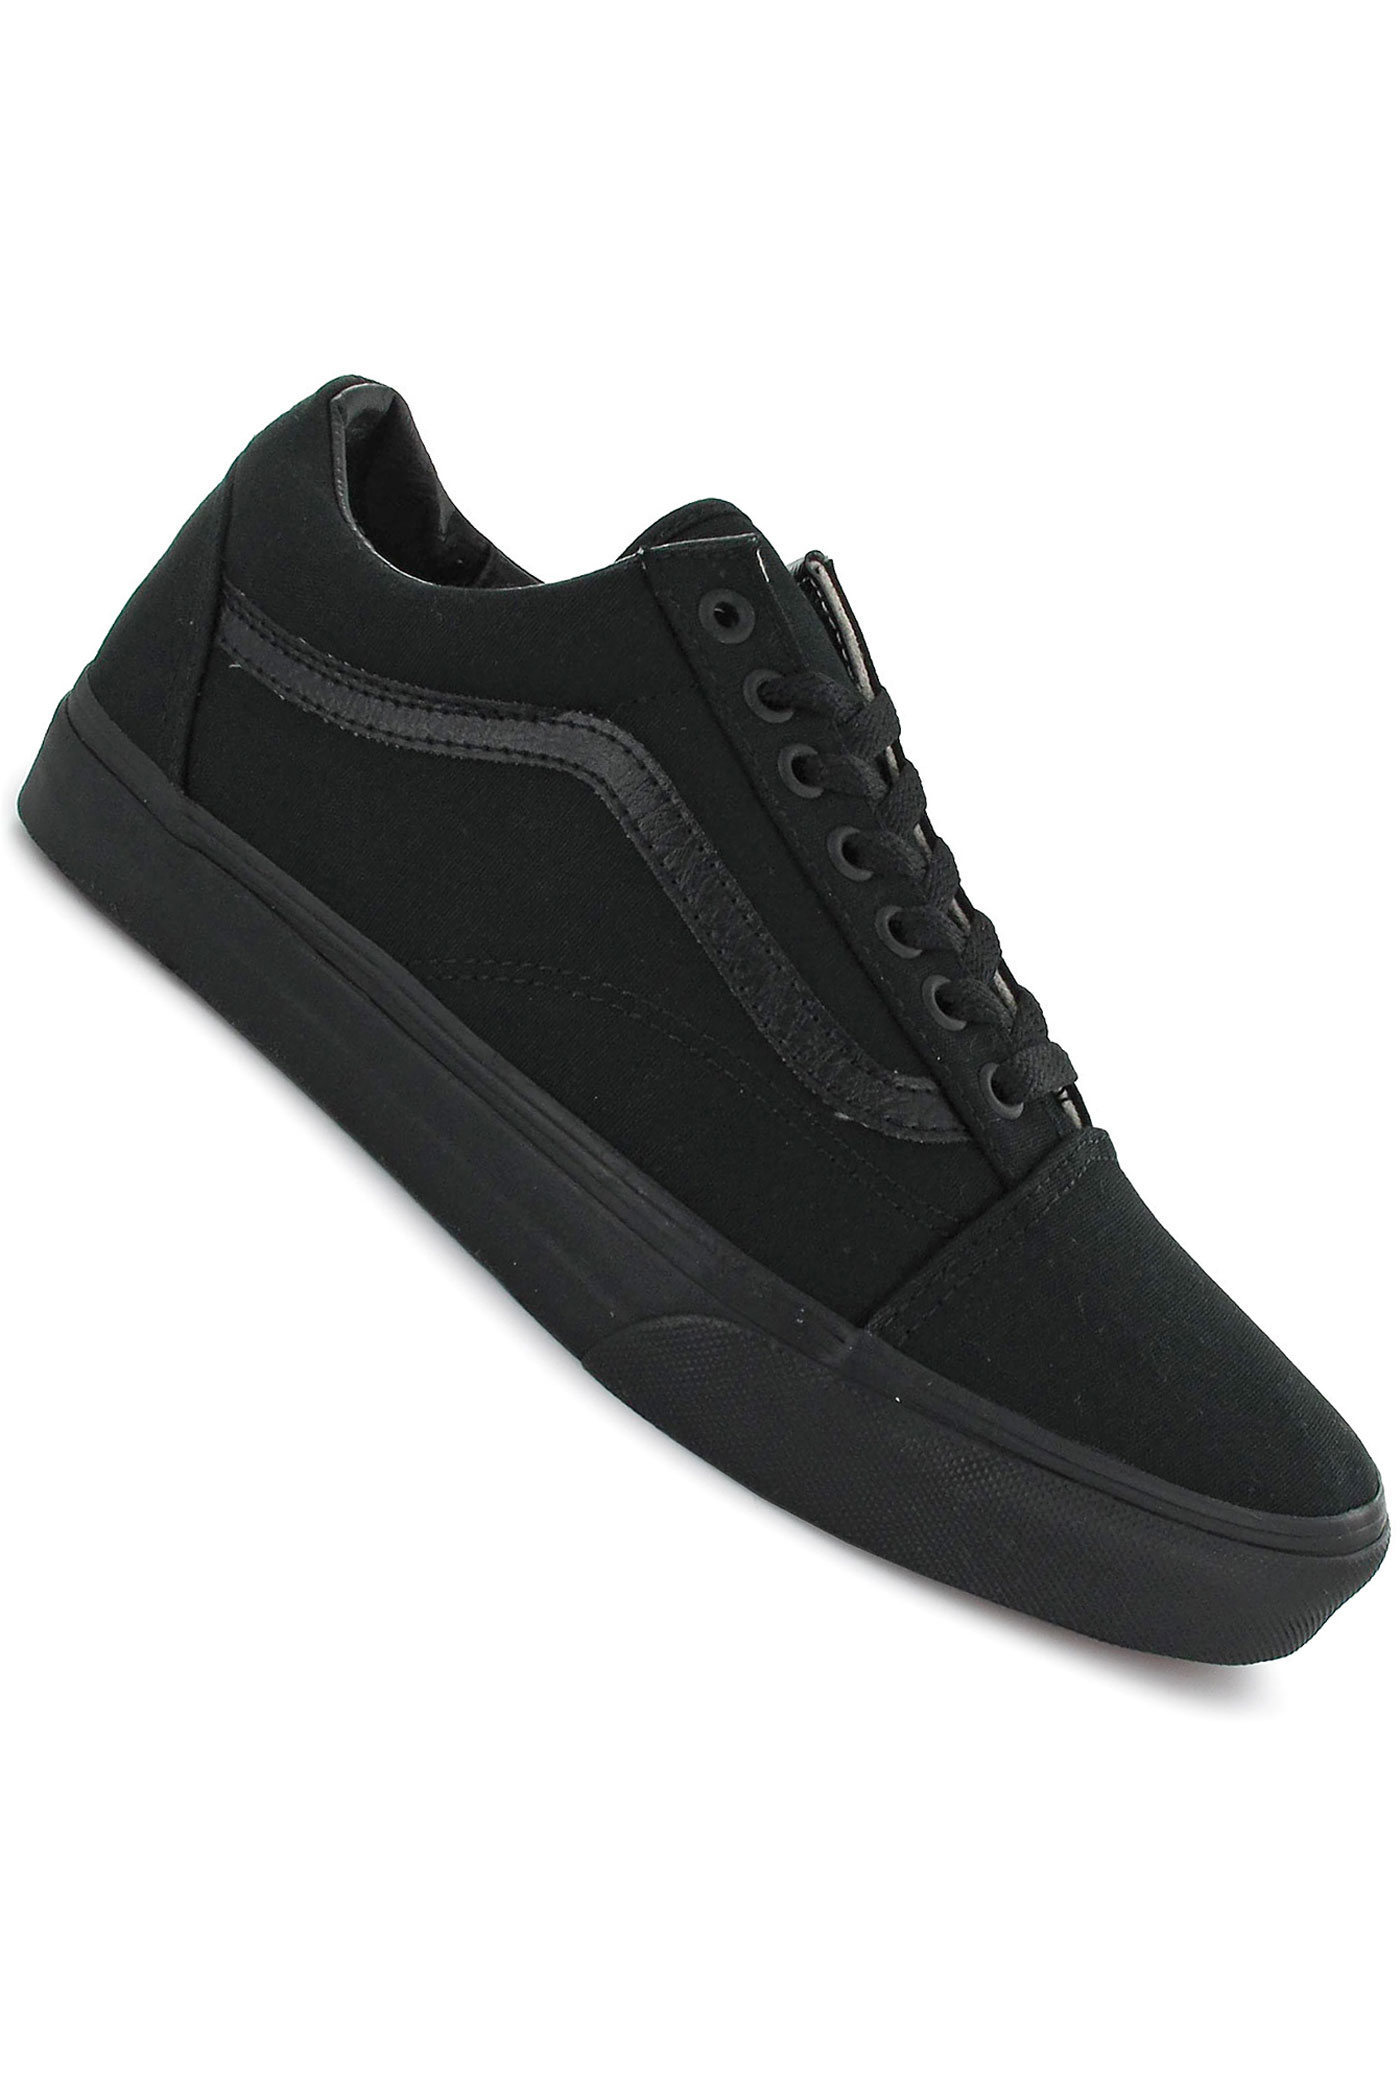 vans old skool shoes black black buy at skatedeluxe. Black Bedroom Furniture Sets. Home Design Ideas